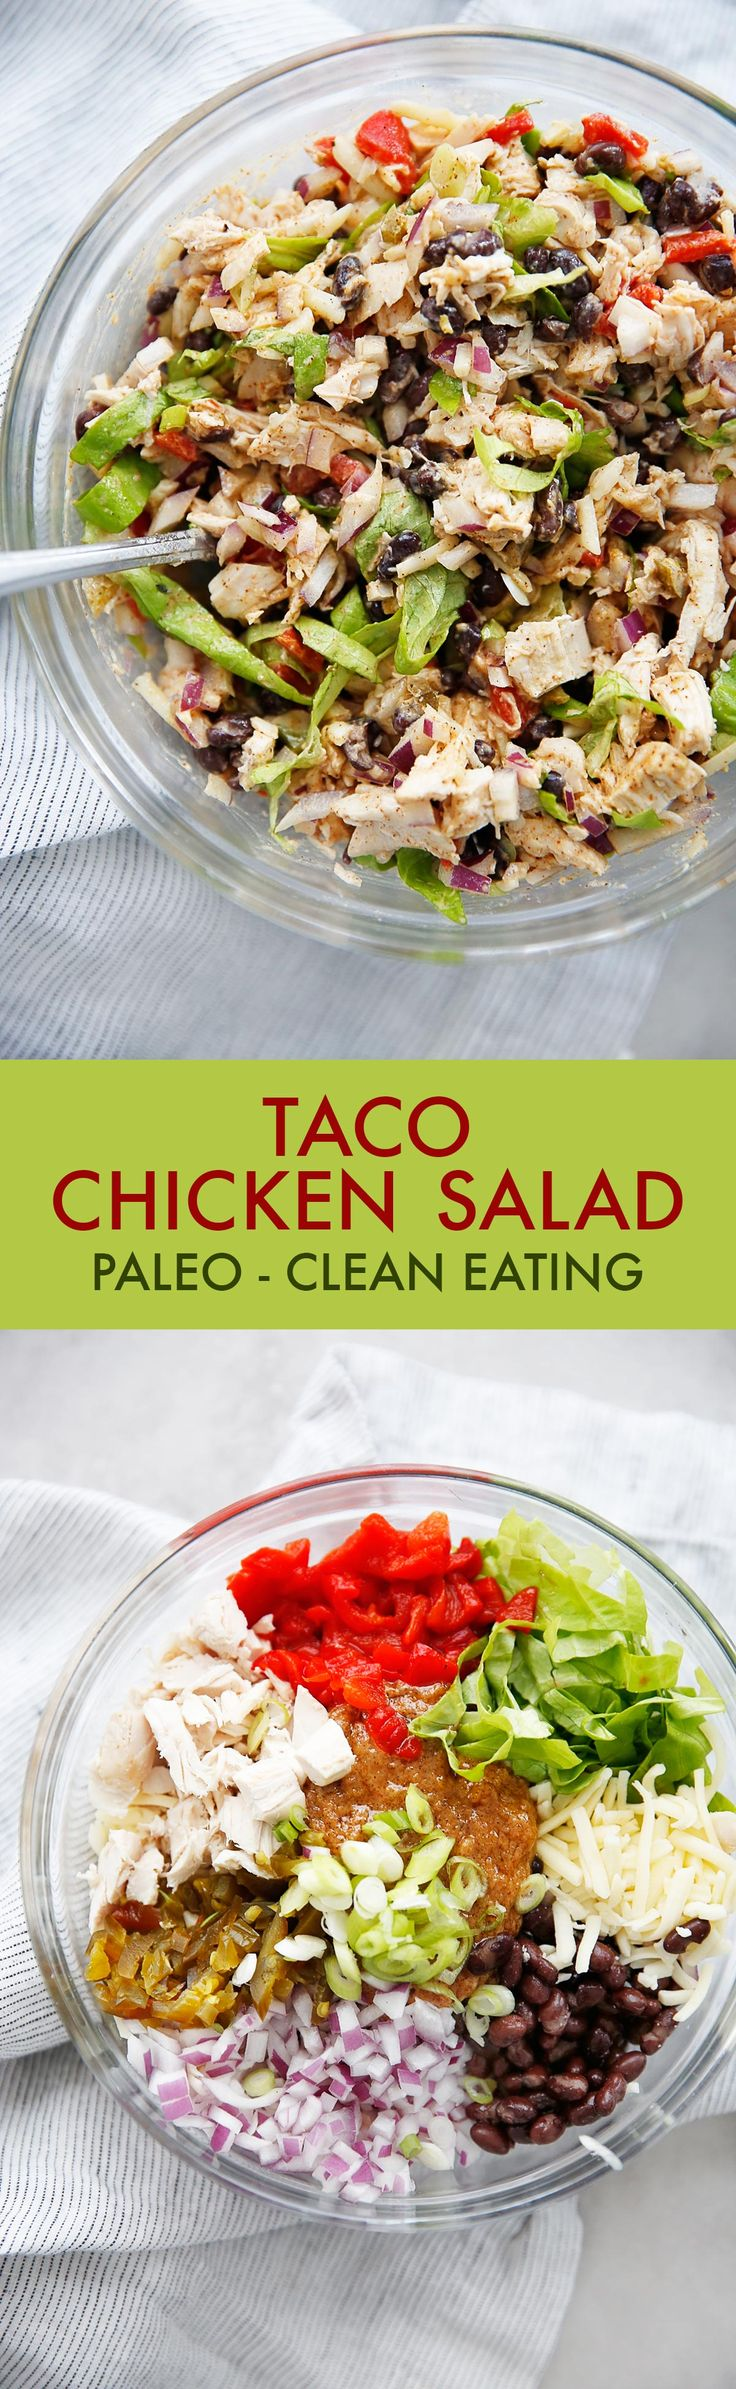 This healthy Taco Chicken Salad recipe is the perfect switch up from your classic chicken salad recipe. All the taco flavors you love, made into a great meal prep lunch recipe. Gluten-free and paleo-friendly, and a perfect, kid-friendly chicken salad!